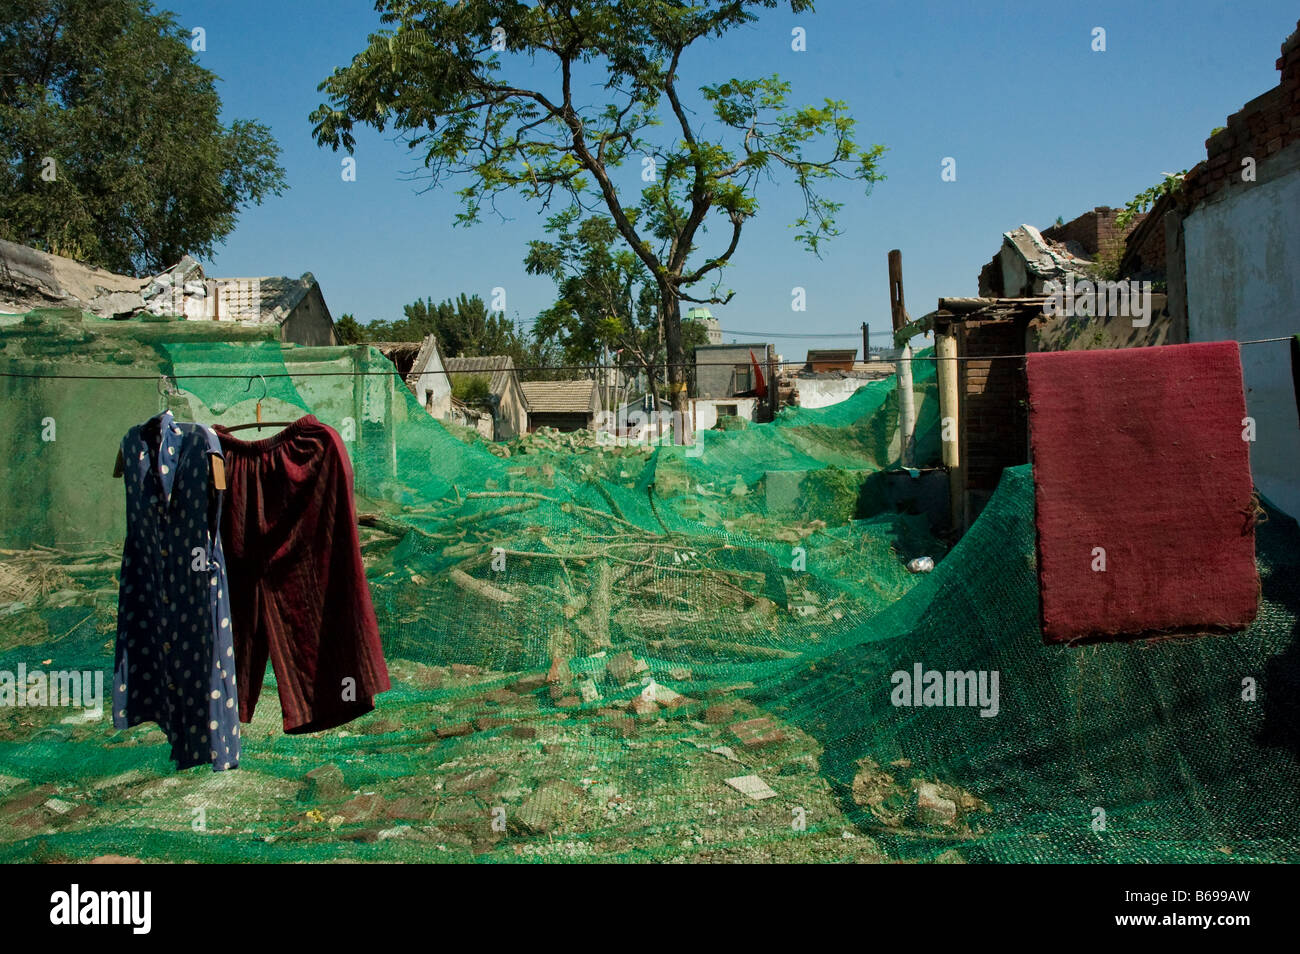 green plastic net covering demolished hutong rubble - Stock Image